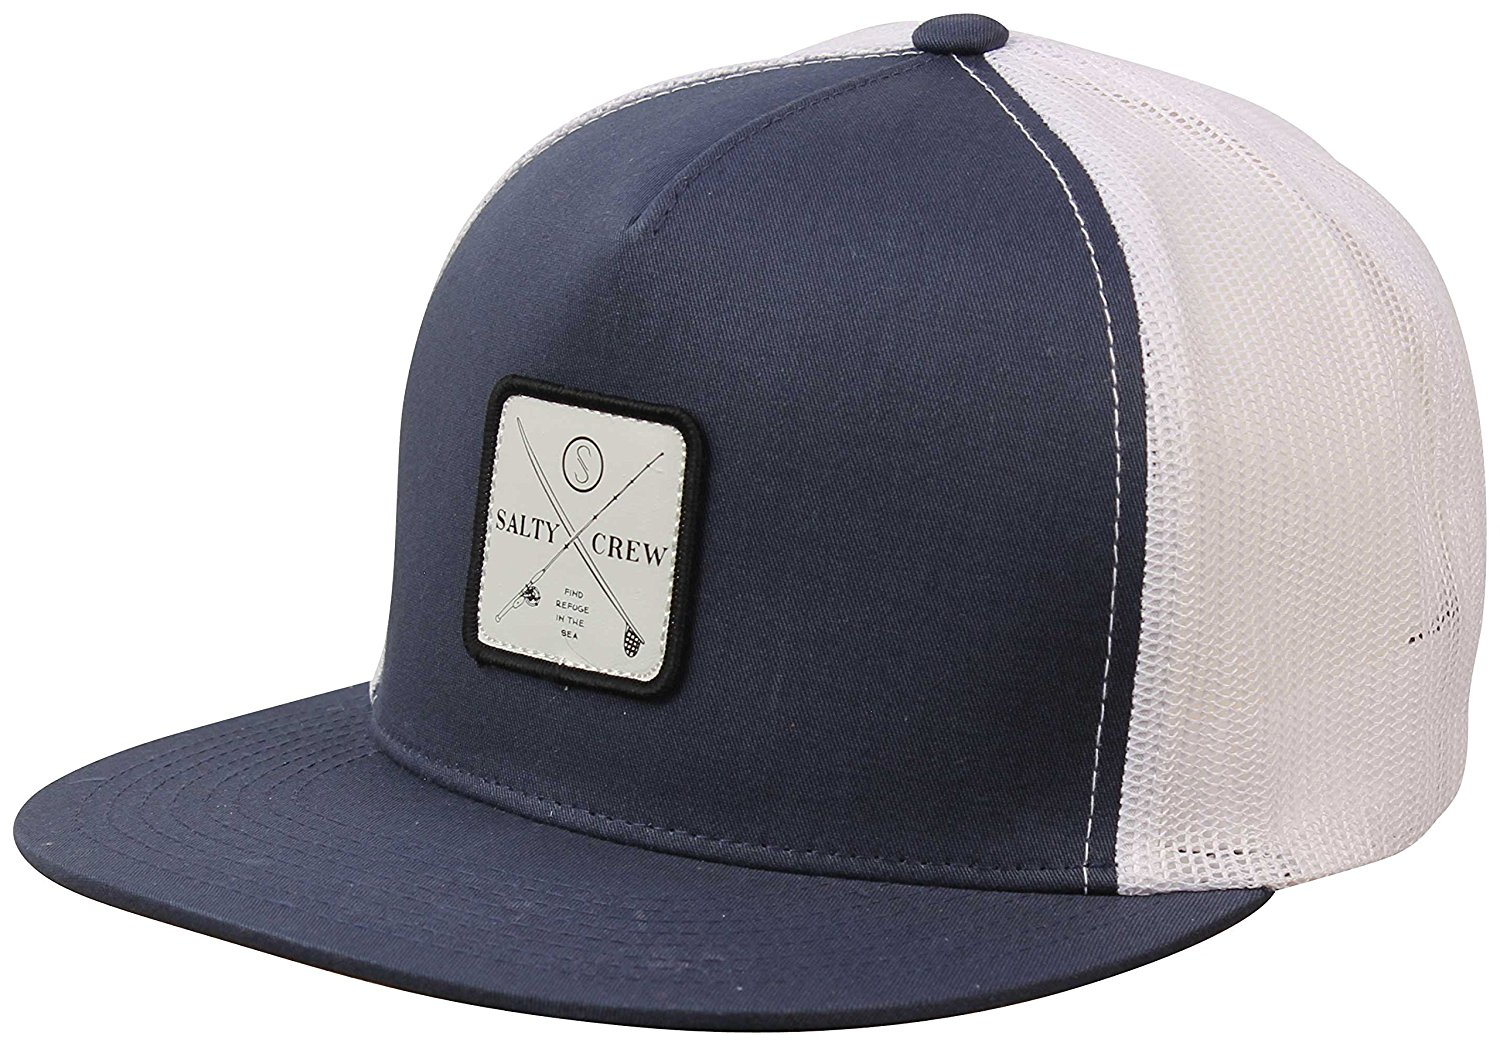 6071b411c43 Get Quotations · Salty Crew Chart Trucker Hat - Navy White